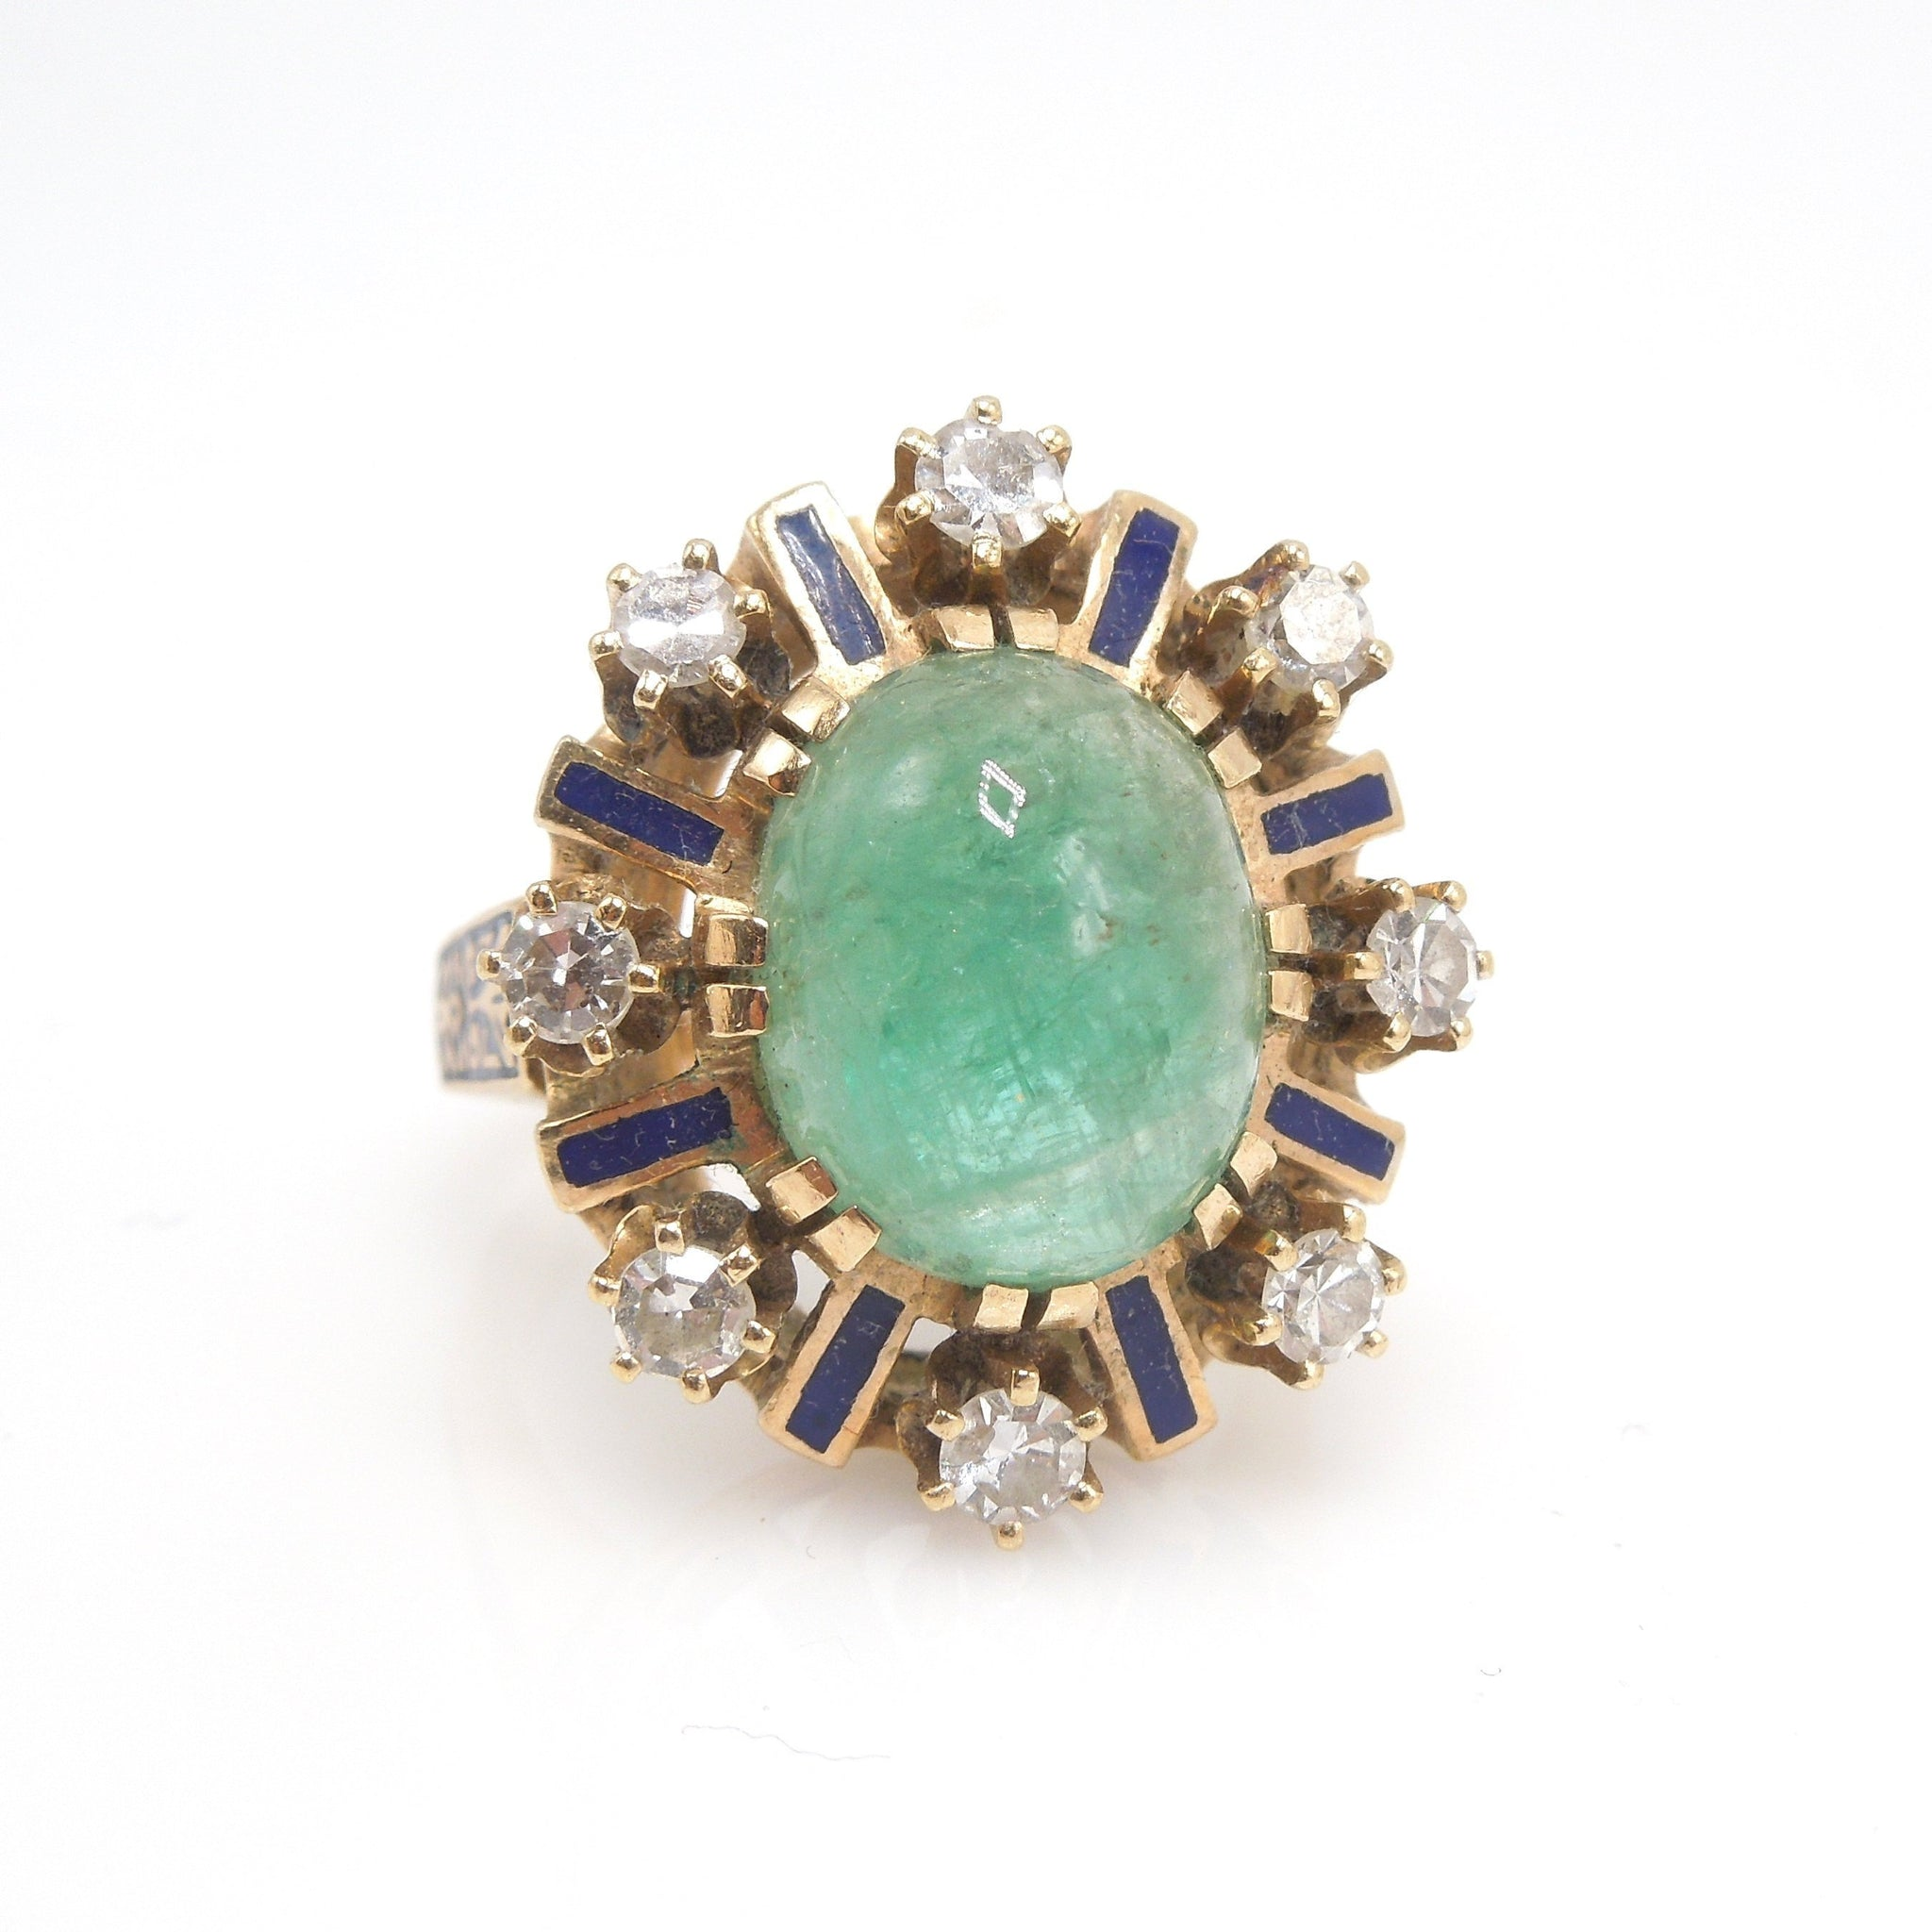 5.00ct Cabochon Emerald Ring - Antique/Victorian - with Enamel and Antique Cut Diamonds